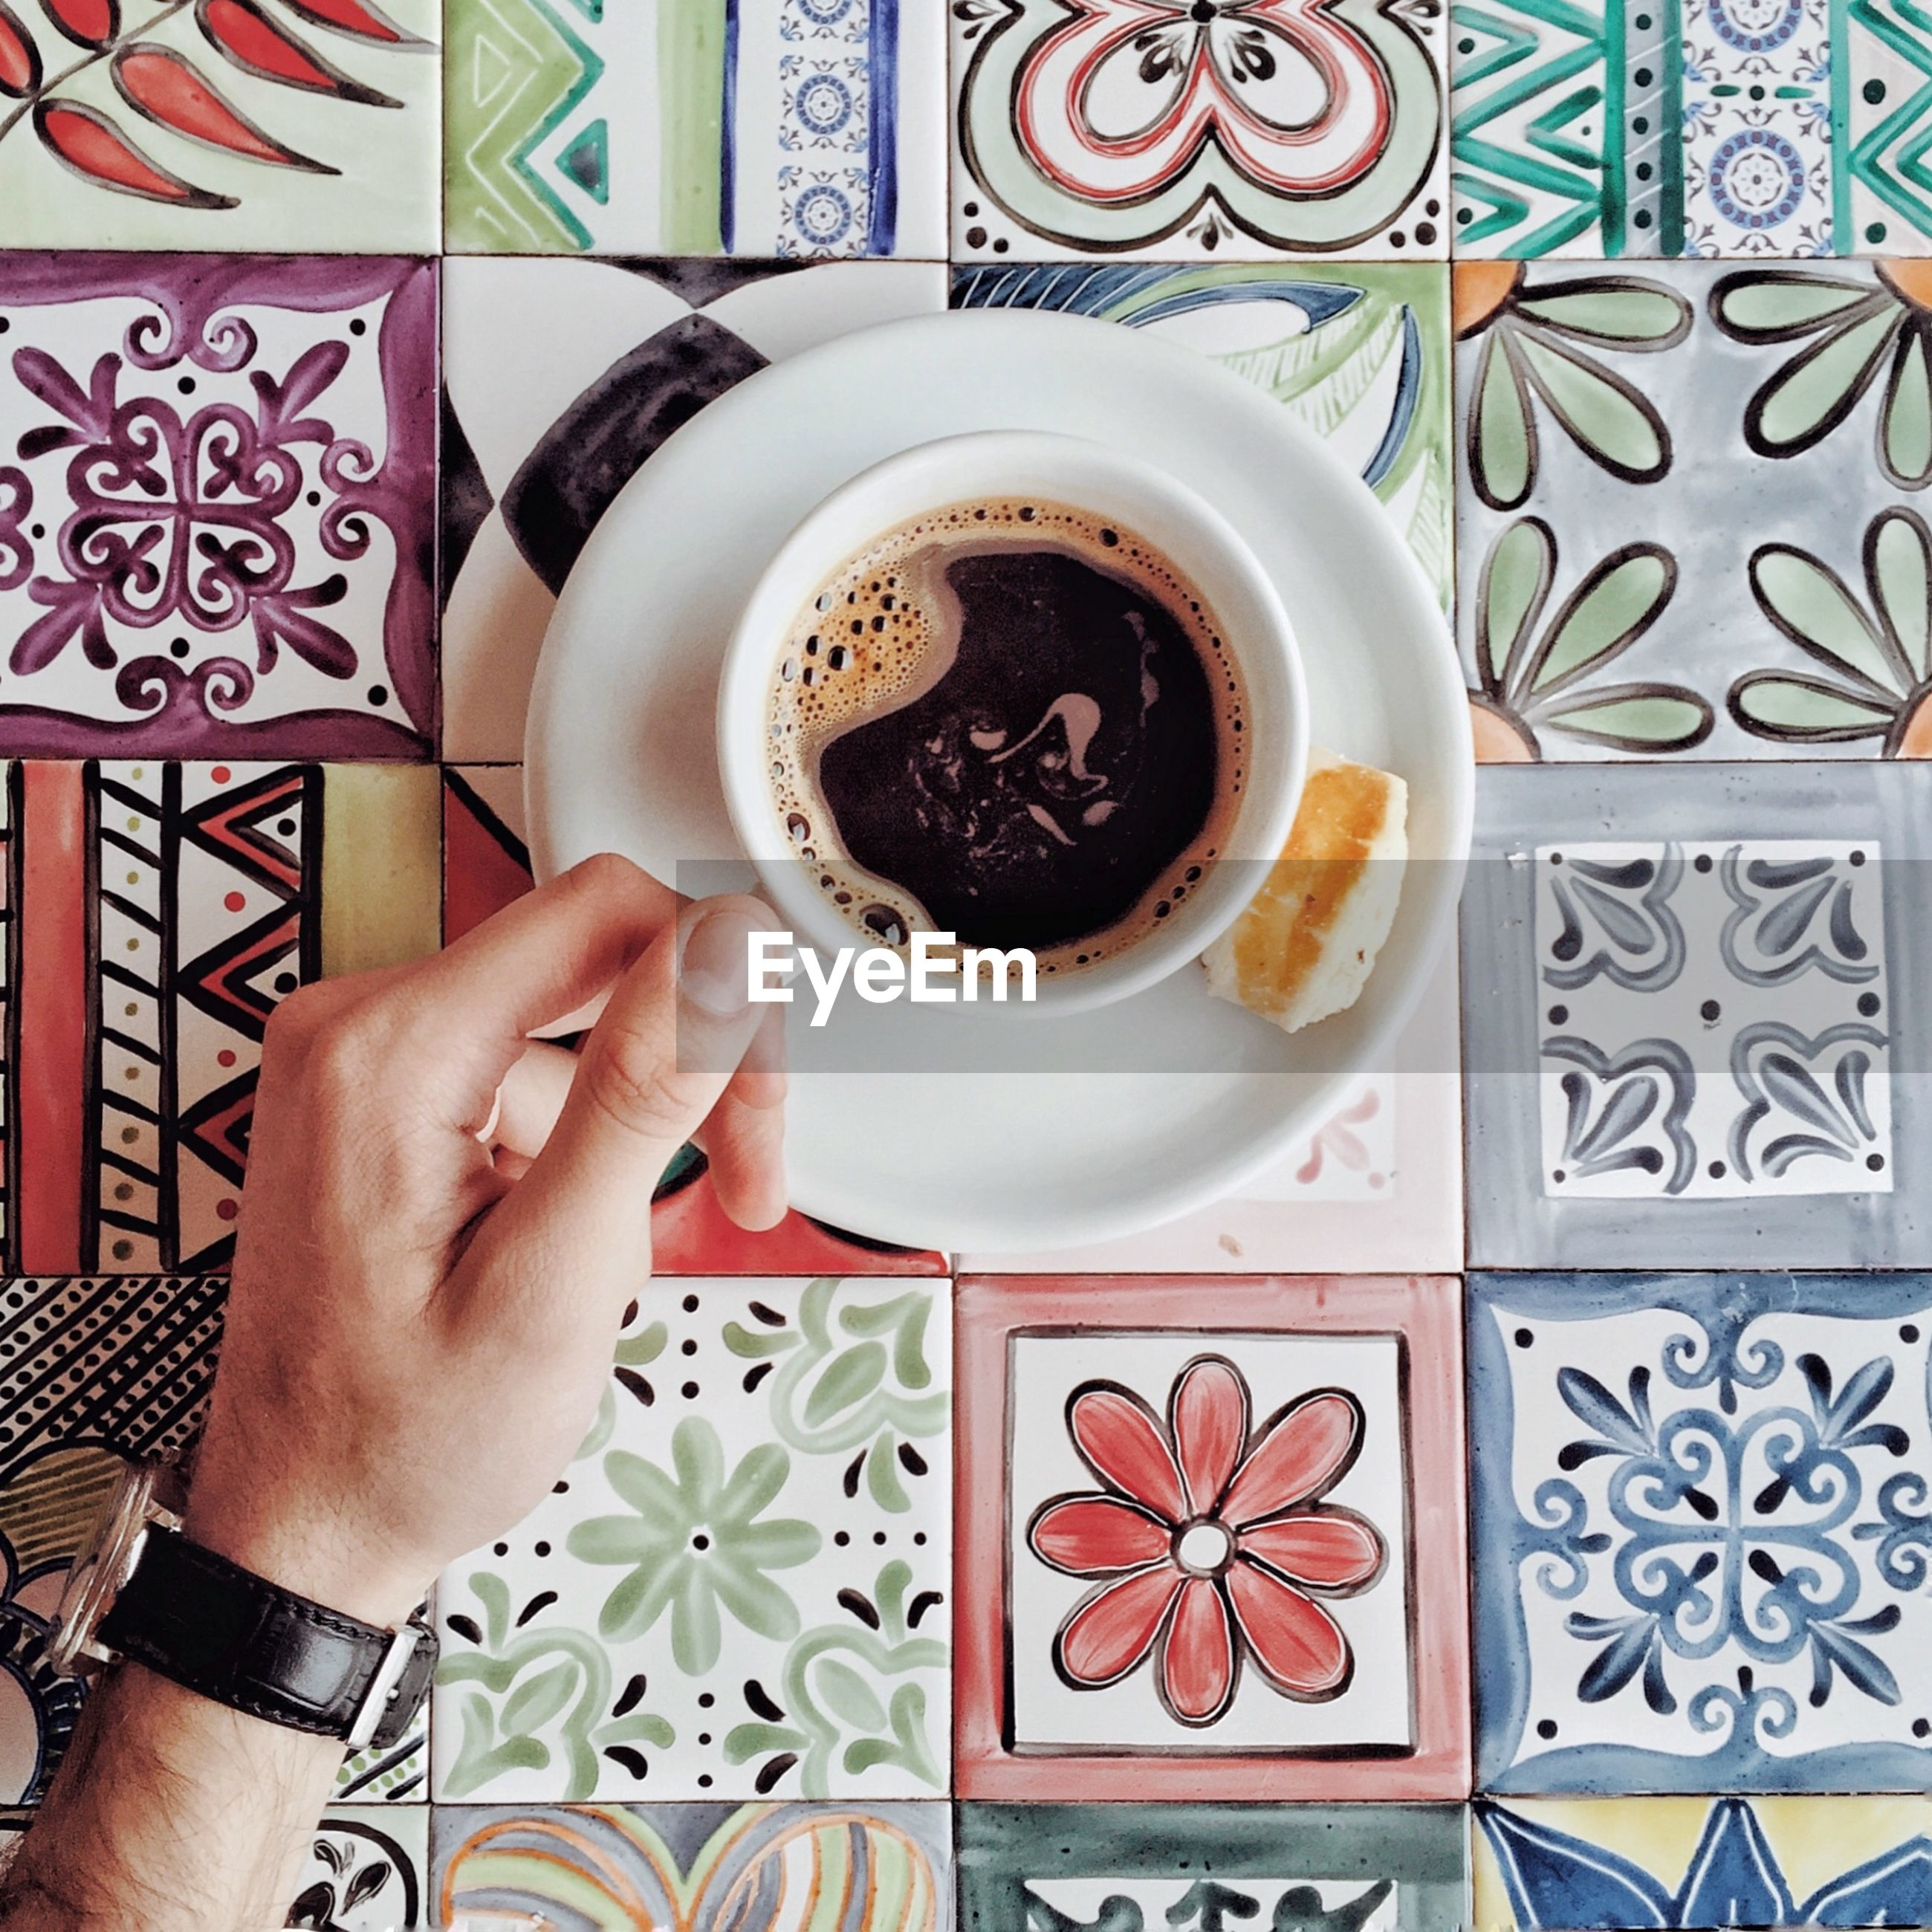 food and drink, human hand, coffee, mug, cup, hand, coffee - drink, coffee cup, one person, real people, directly above, human body part, holding, drink, refreshment, indoors, freshness, table, food, pattern, crockery, floral pattern, finger, tiled floor